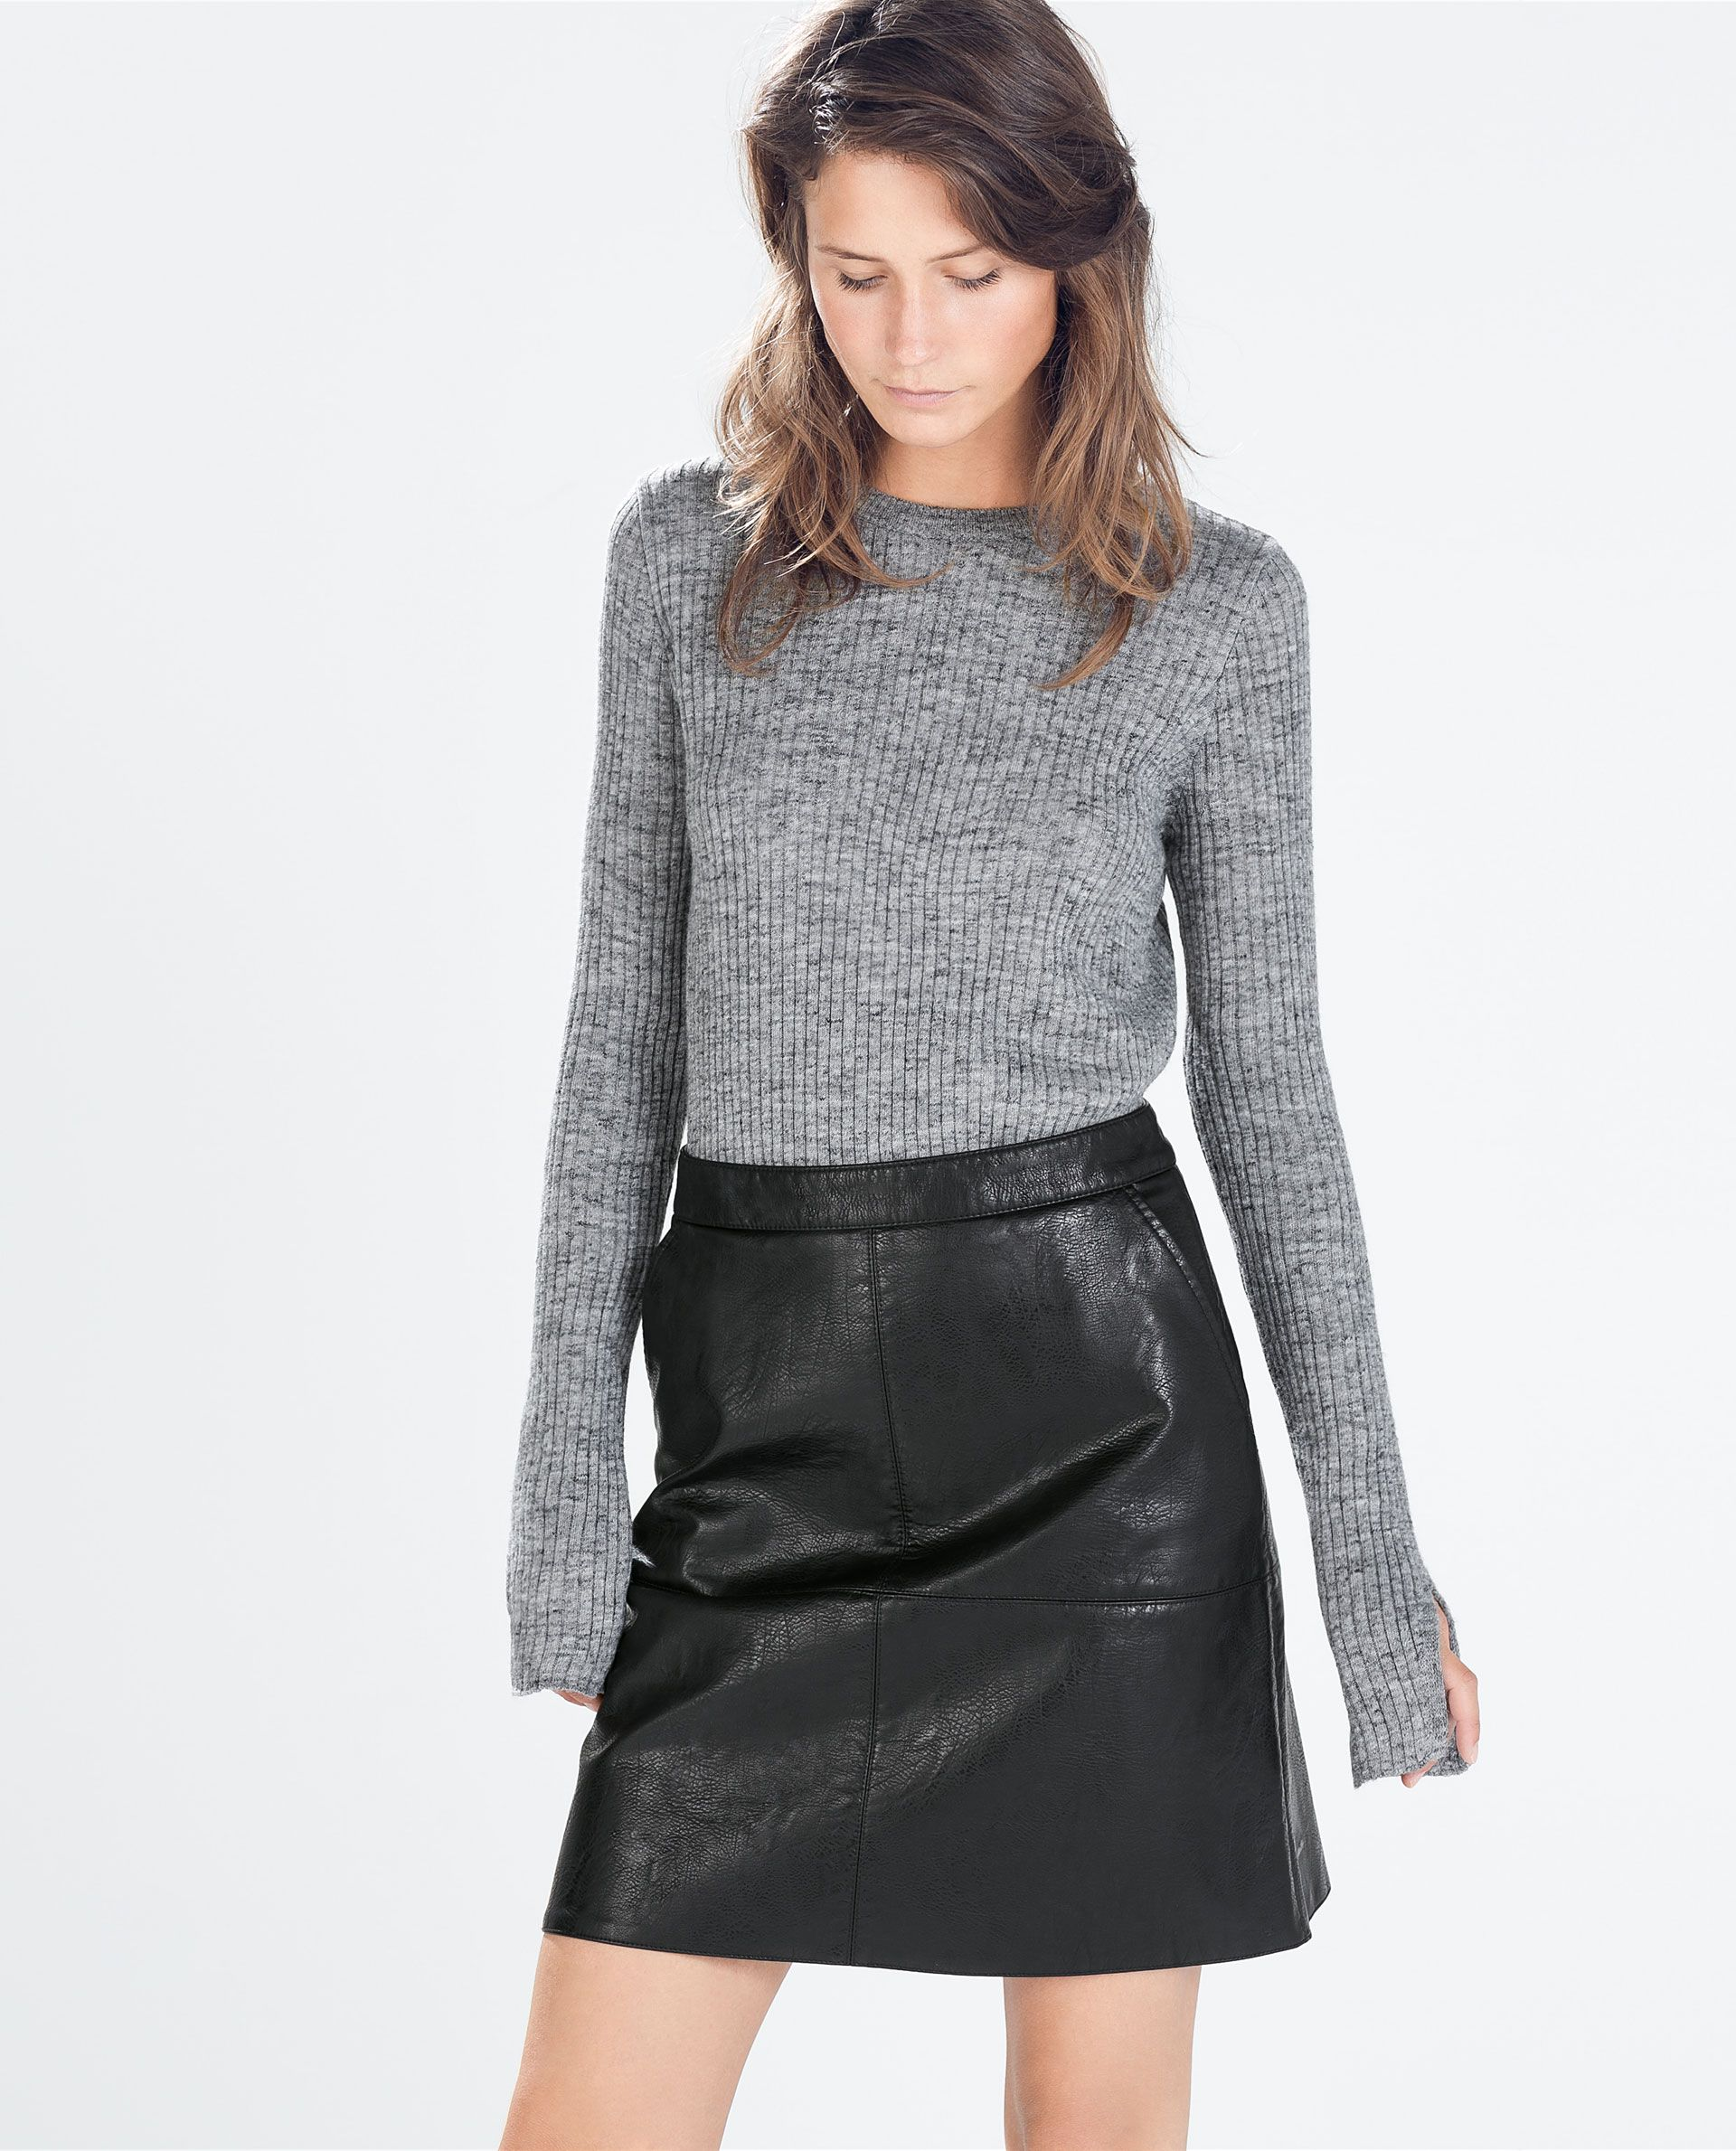 ZARA - DAMES - A-LIJN ROK VAN SYNTHETISCH LEER | Wish List ...